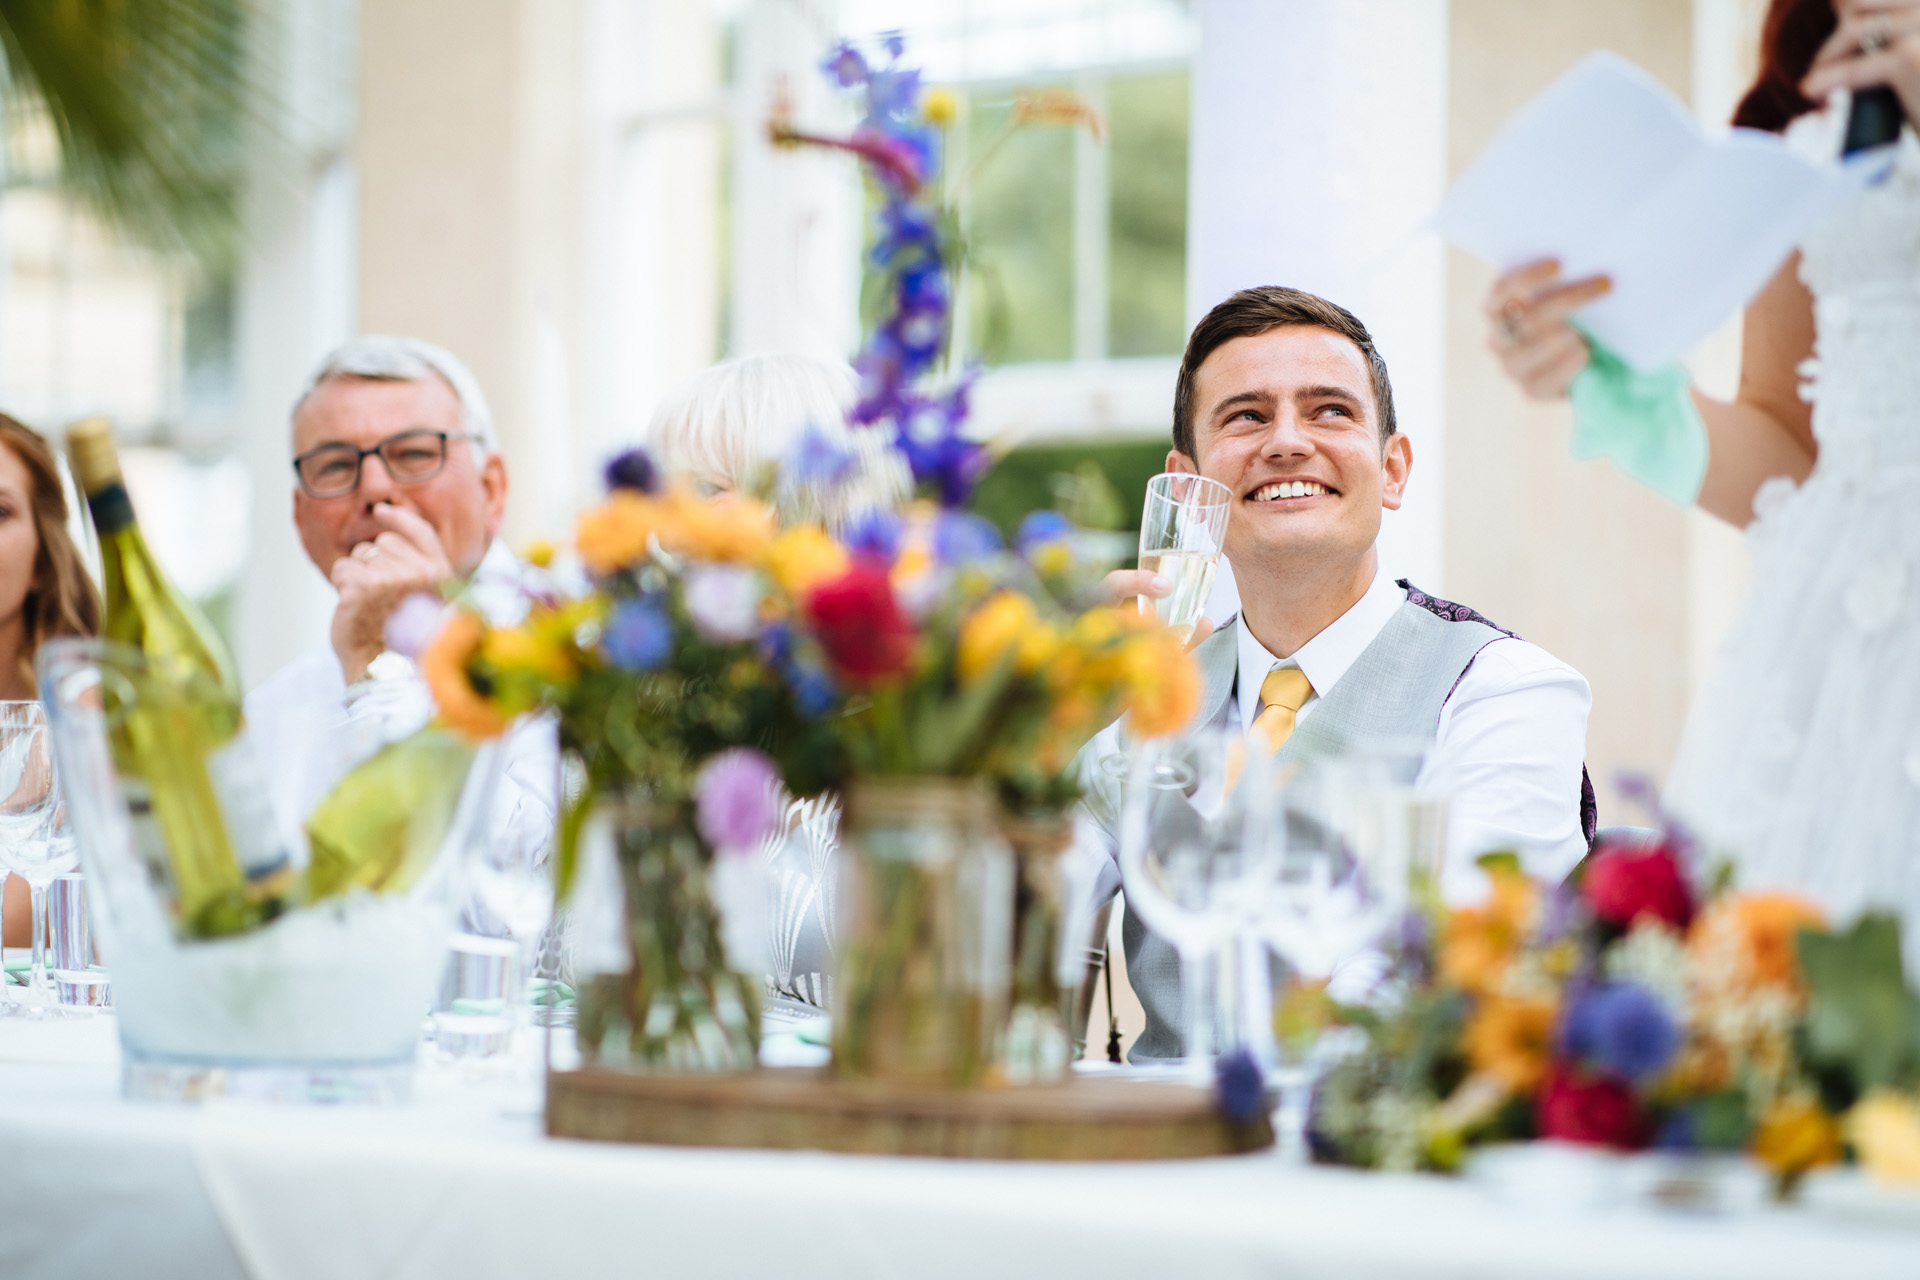 groom smiling at bride and sipping champagne during her speech at syon park wedding